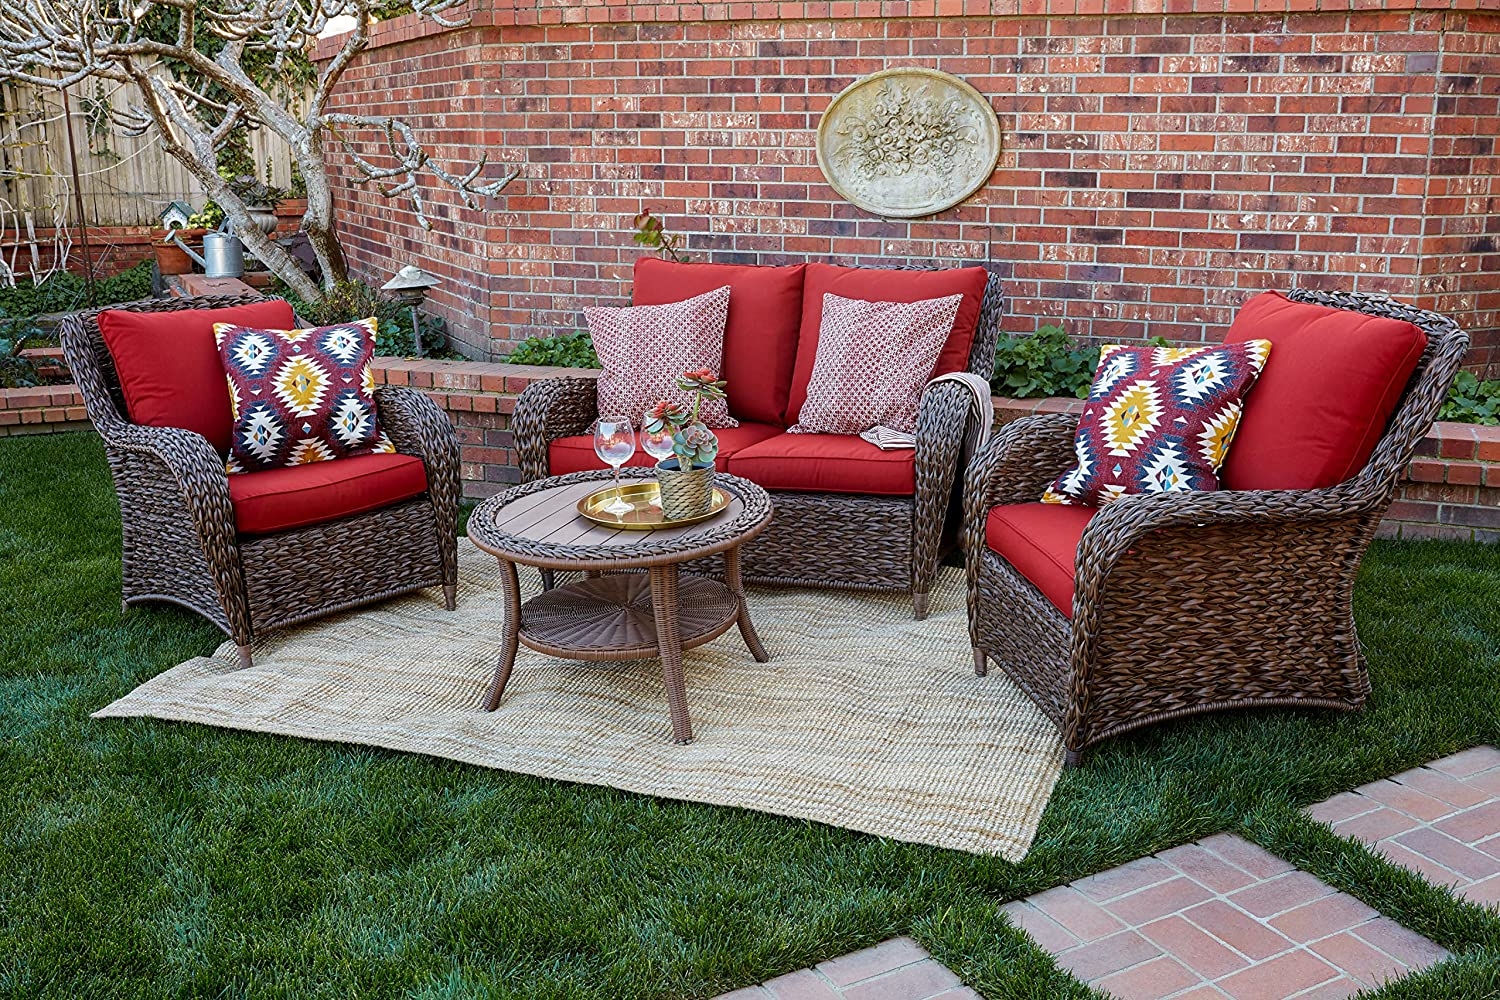 Quality Outdoor Living 65-517109A Stonecrest All-Weather Wicker 4 Piece Deep Seating Set, Brown Red Cushions